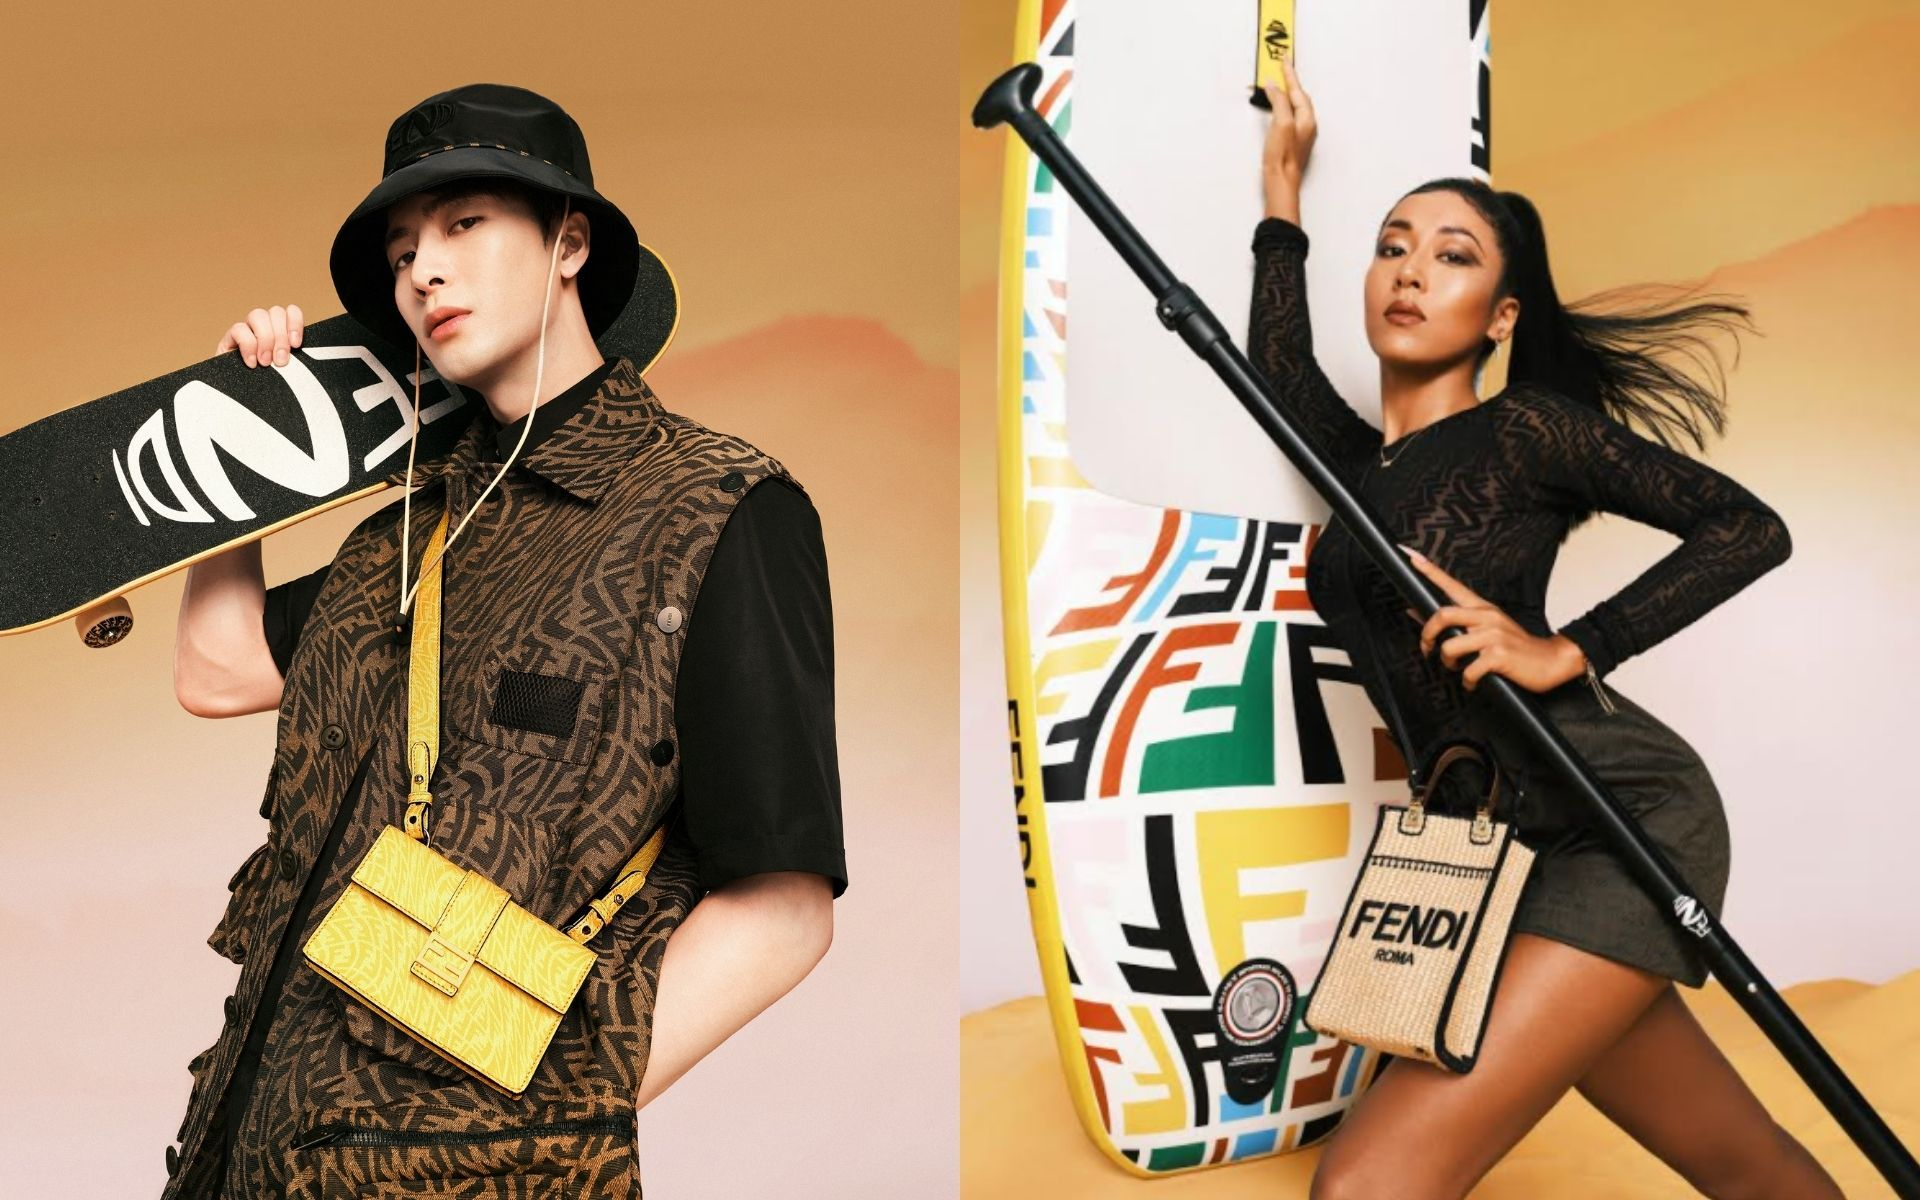 Jackson Wang and Jike Junyi star in the Fendi Summer Capsule Collection campaign